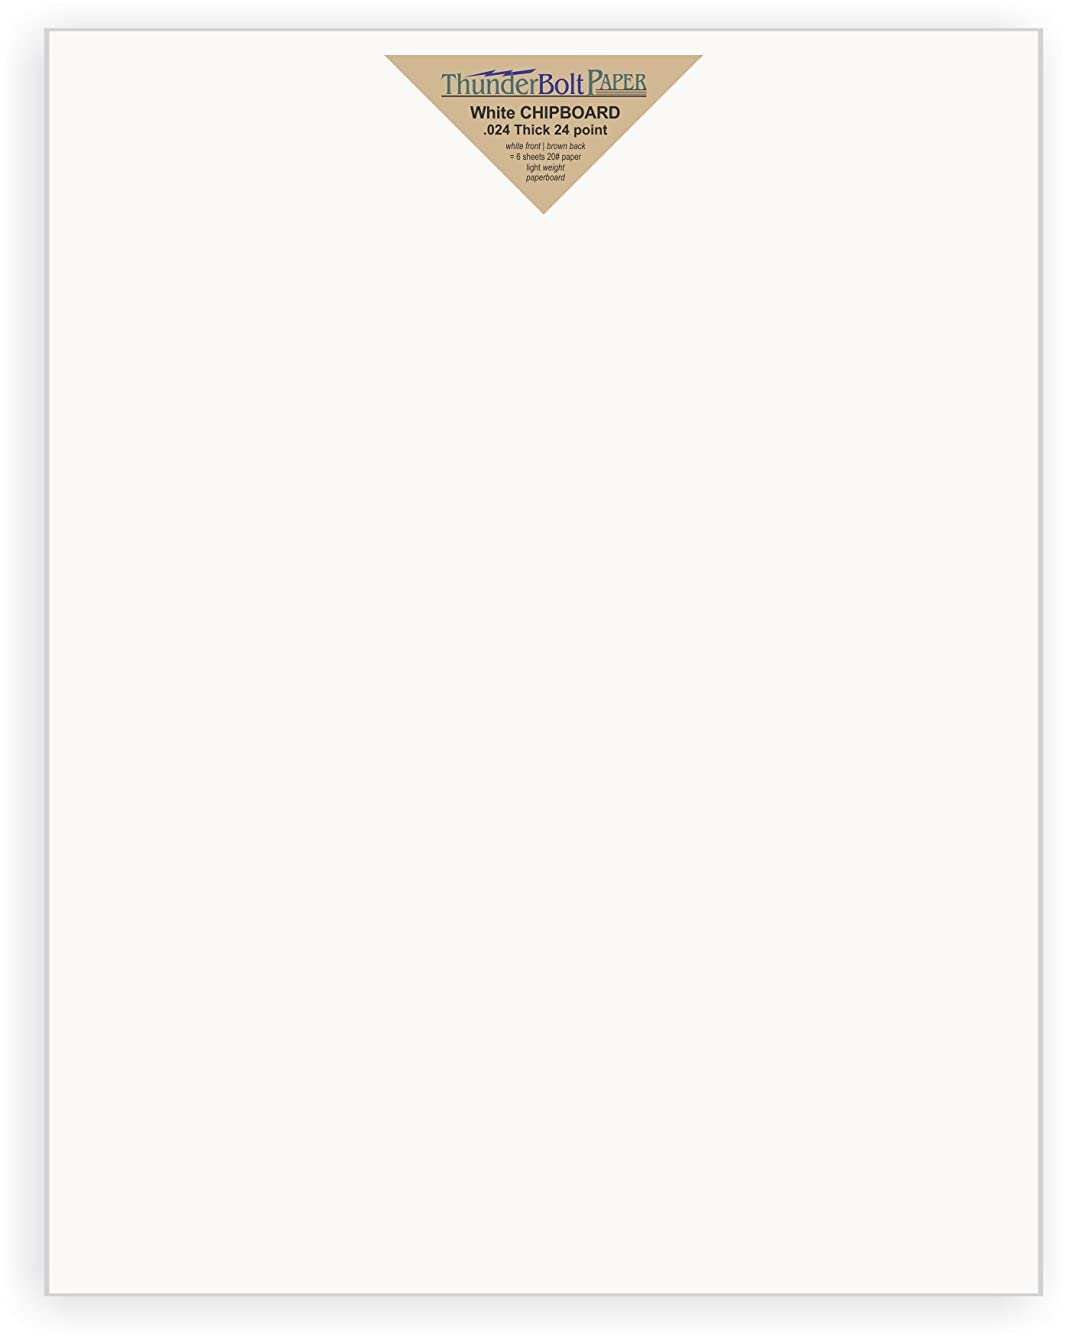 25 Sheets Chipboard 24pt white 1 side - 11